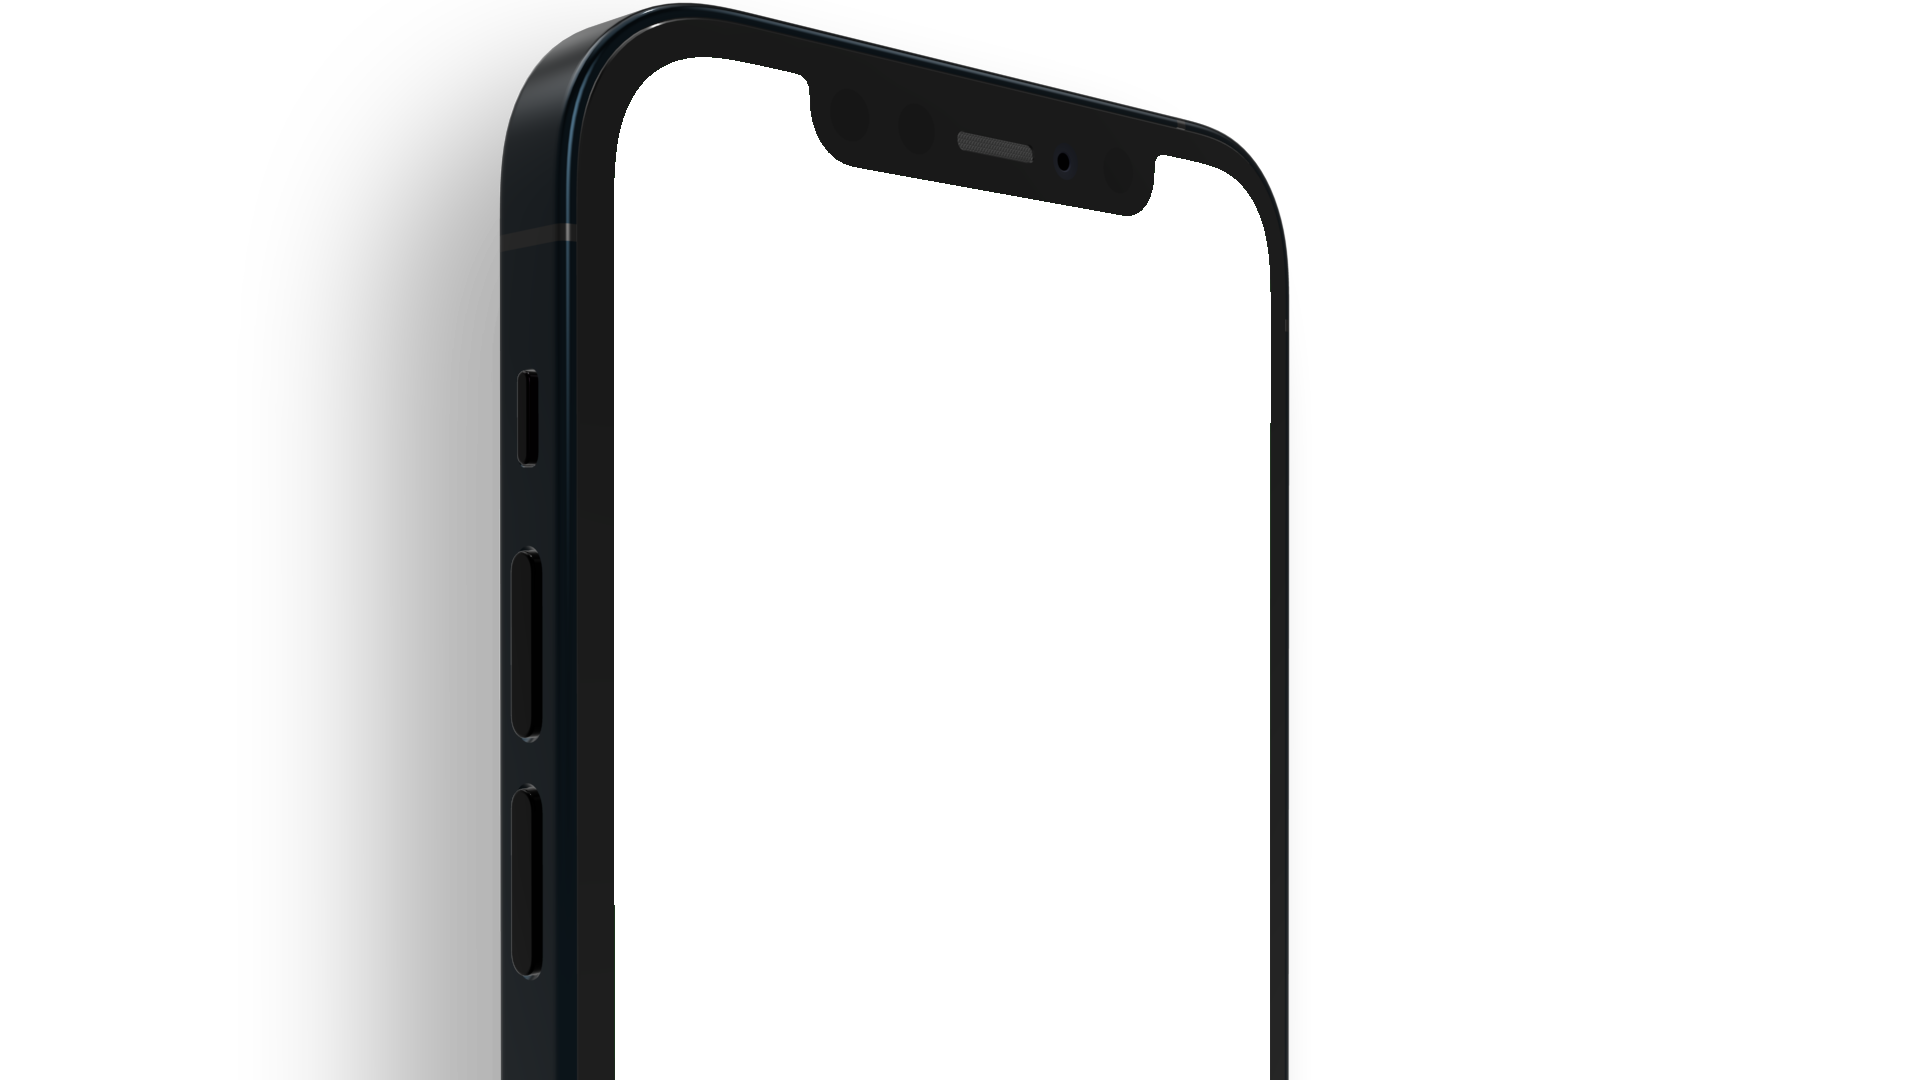 Top half of an iPhone 12 PNG seen from the side